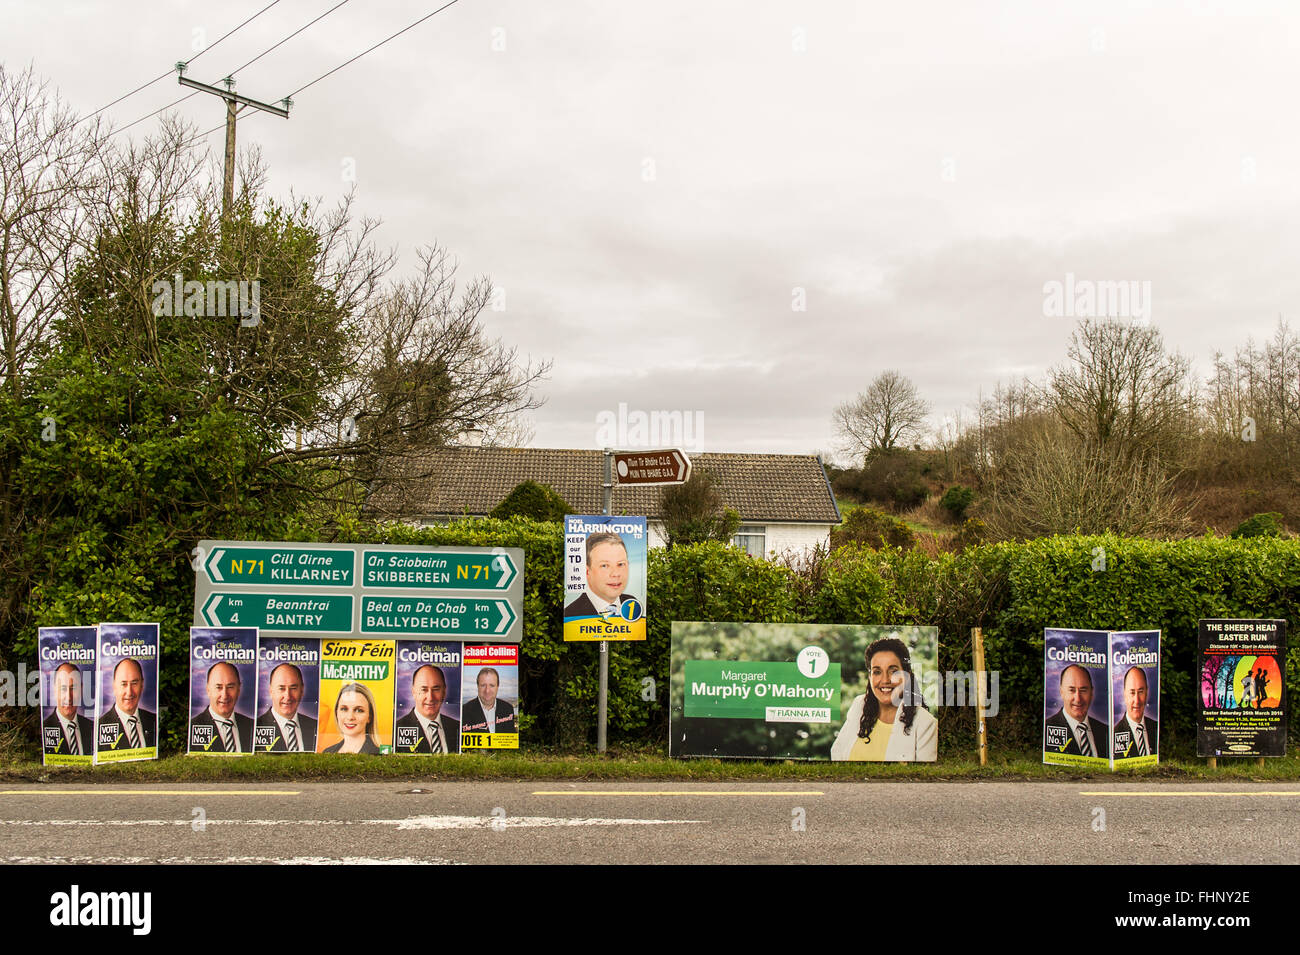 Roadside West Cork candidate posters for the Irish General Election 2016. - Stock Image